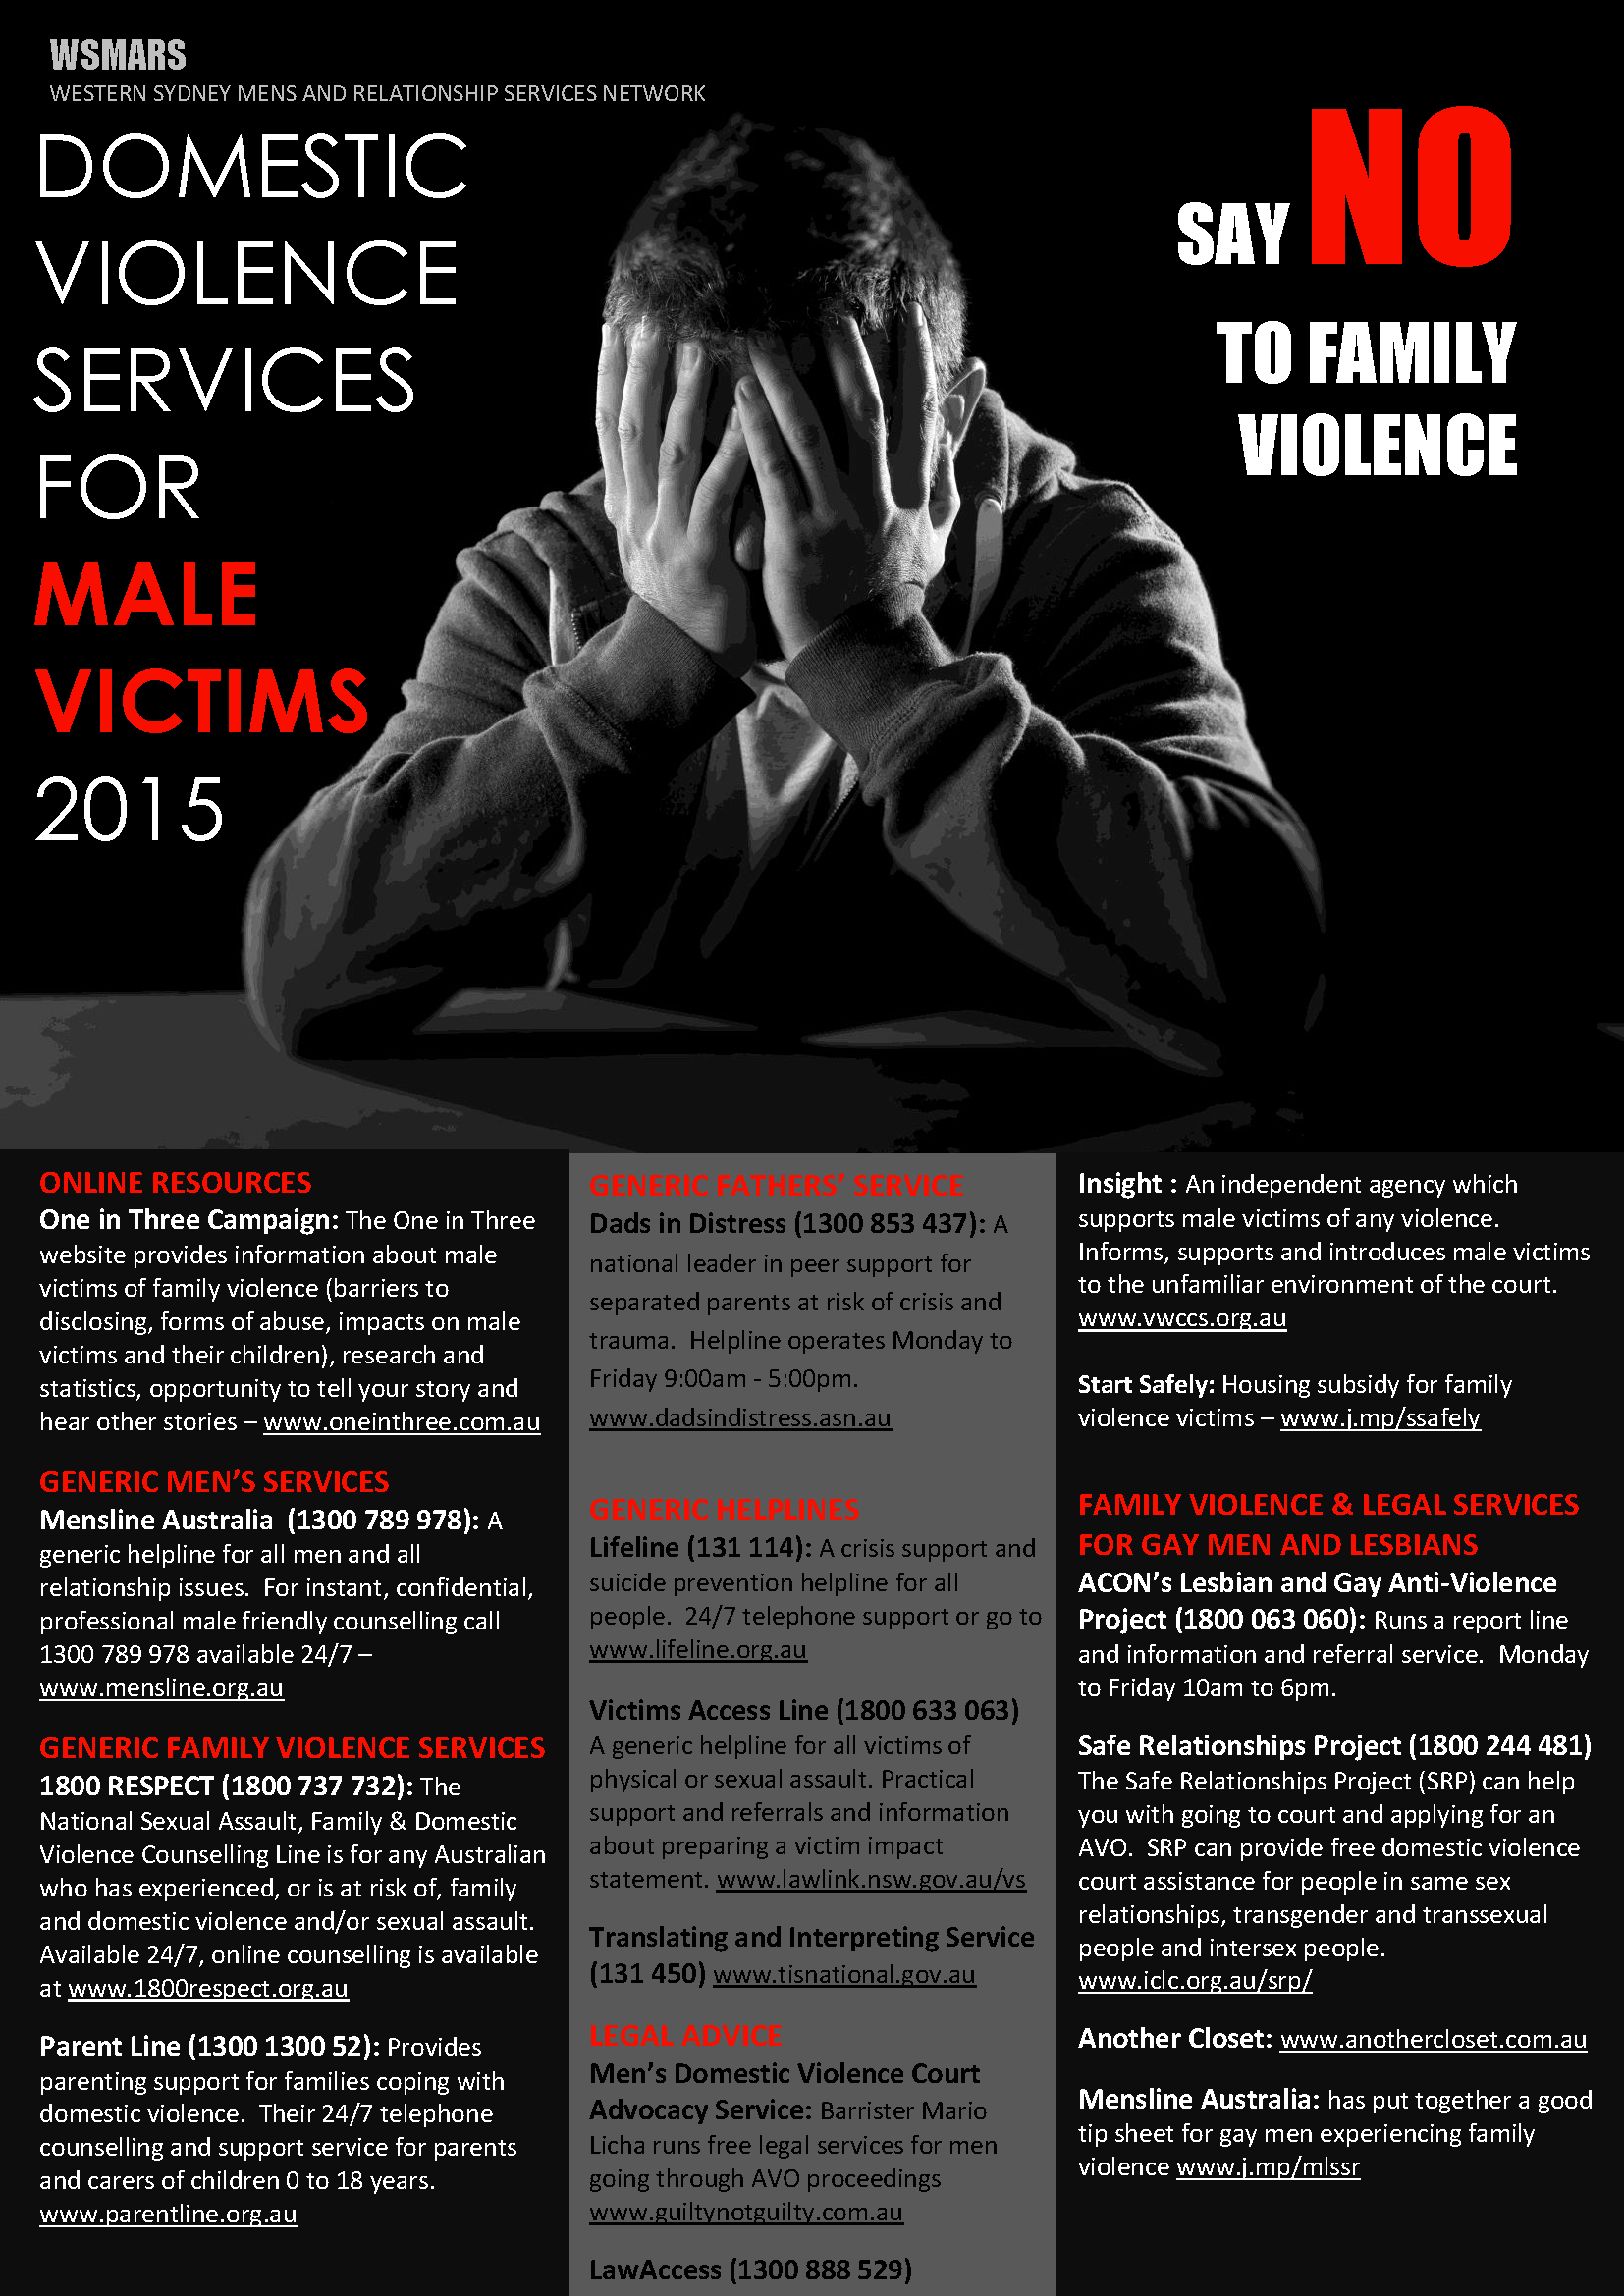 New poster outlines domestic violence services in Western Sydney for male victims